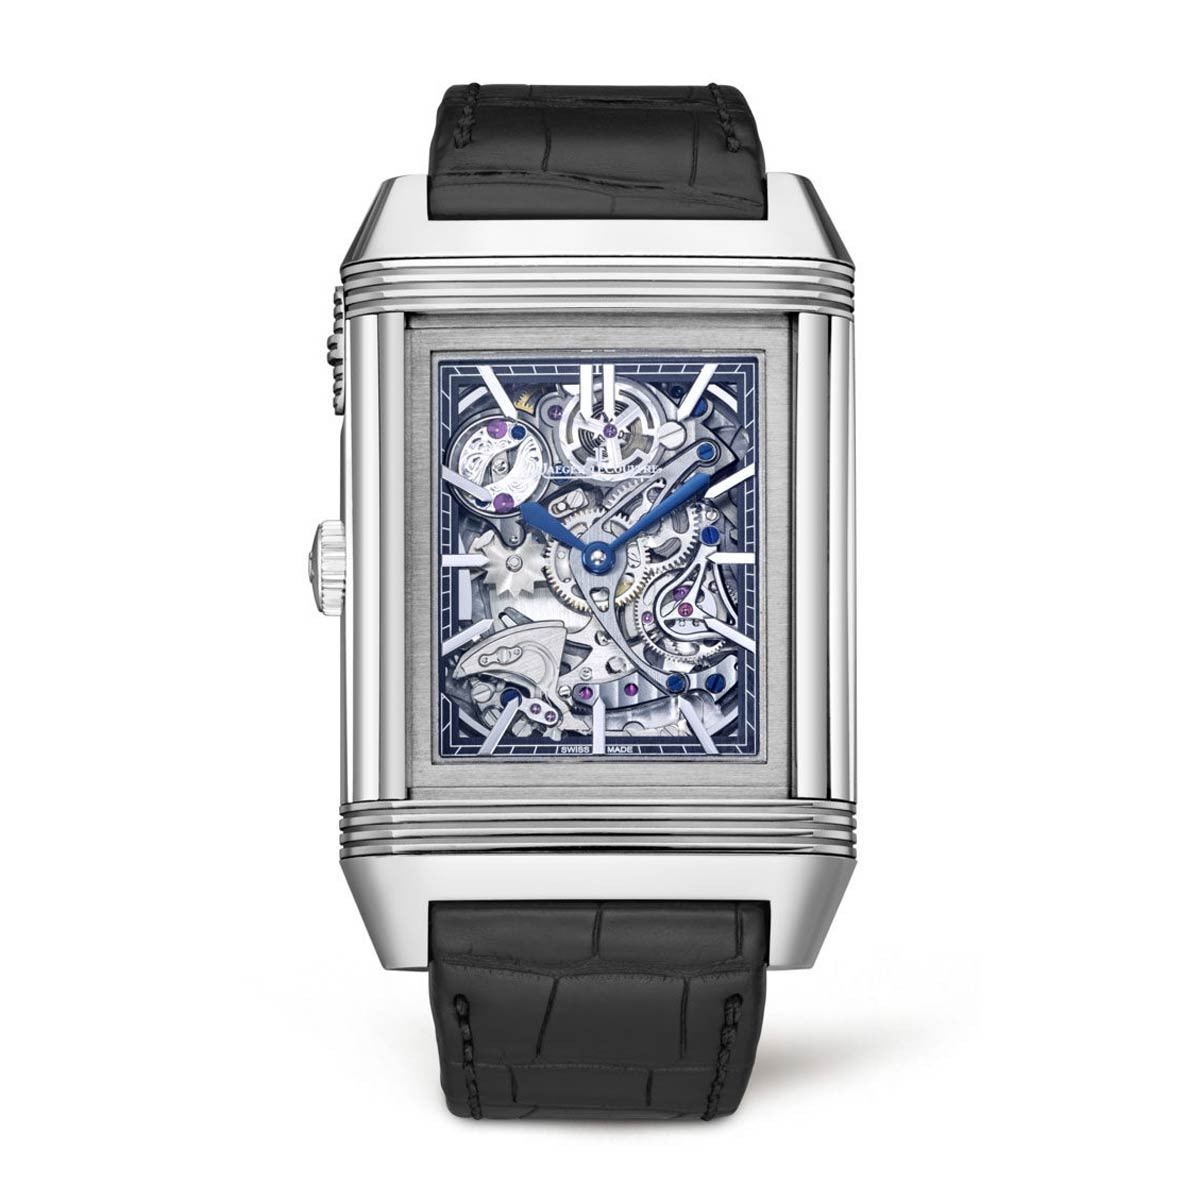 The Reverso Répétition Minutes à Rideau was launched on the Reverso's 80th anniversary in 2011